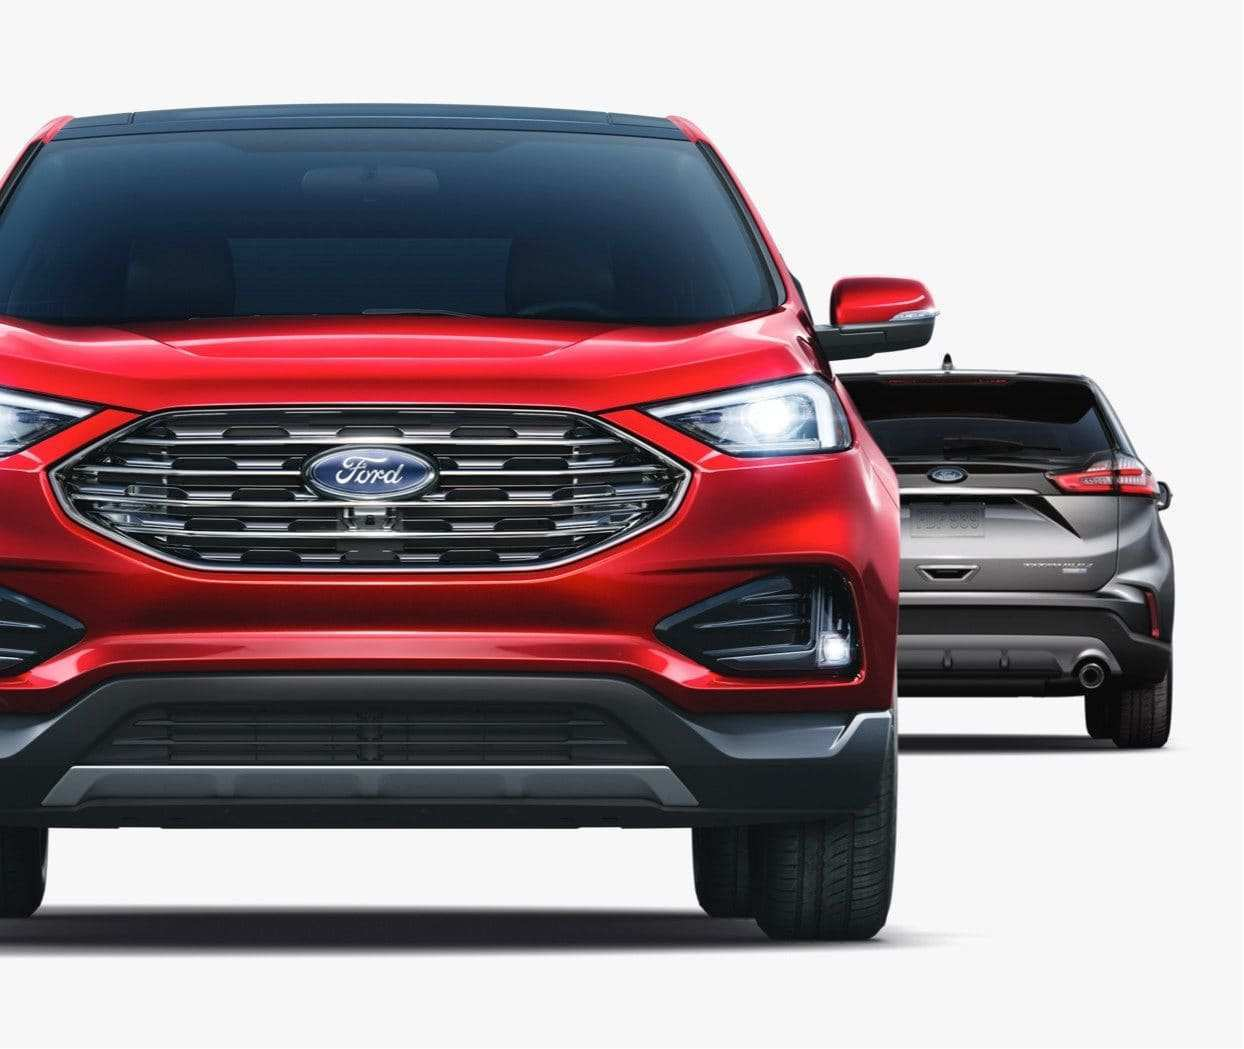 98 Gallery of The 2019 Ford Edge St Youtube Overview And Price Pricing with The 2019 Ford Edge St Youtube Overview And Price